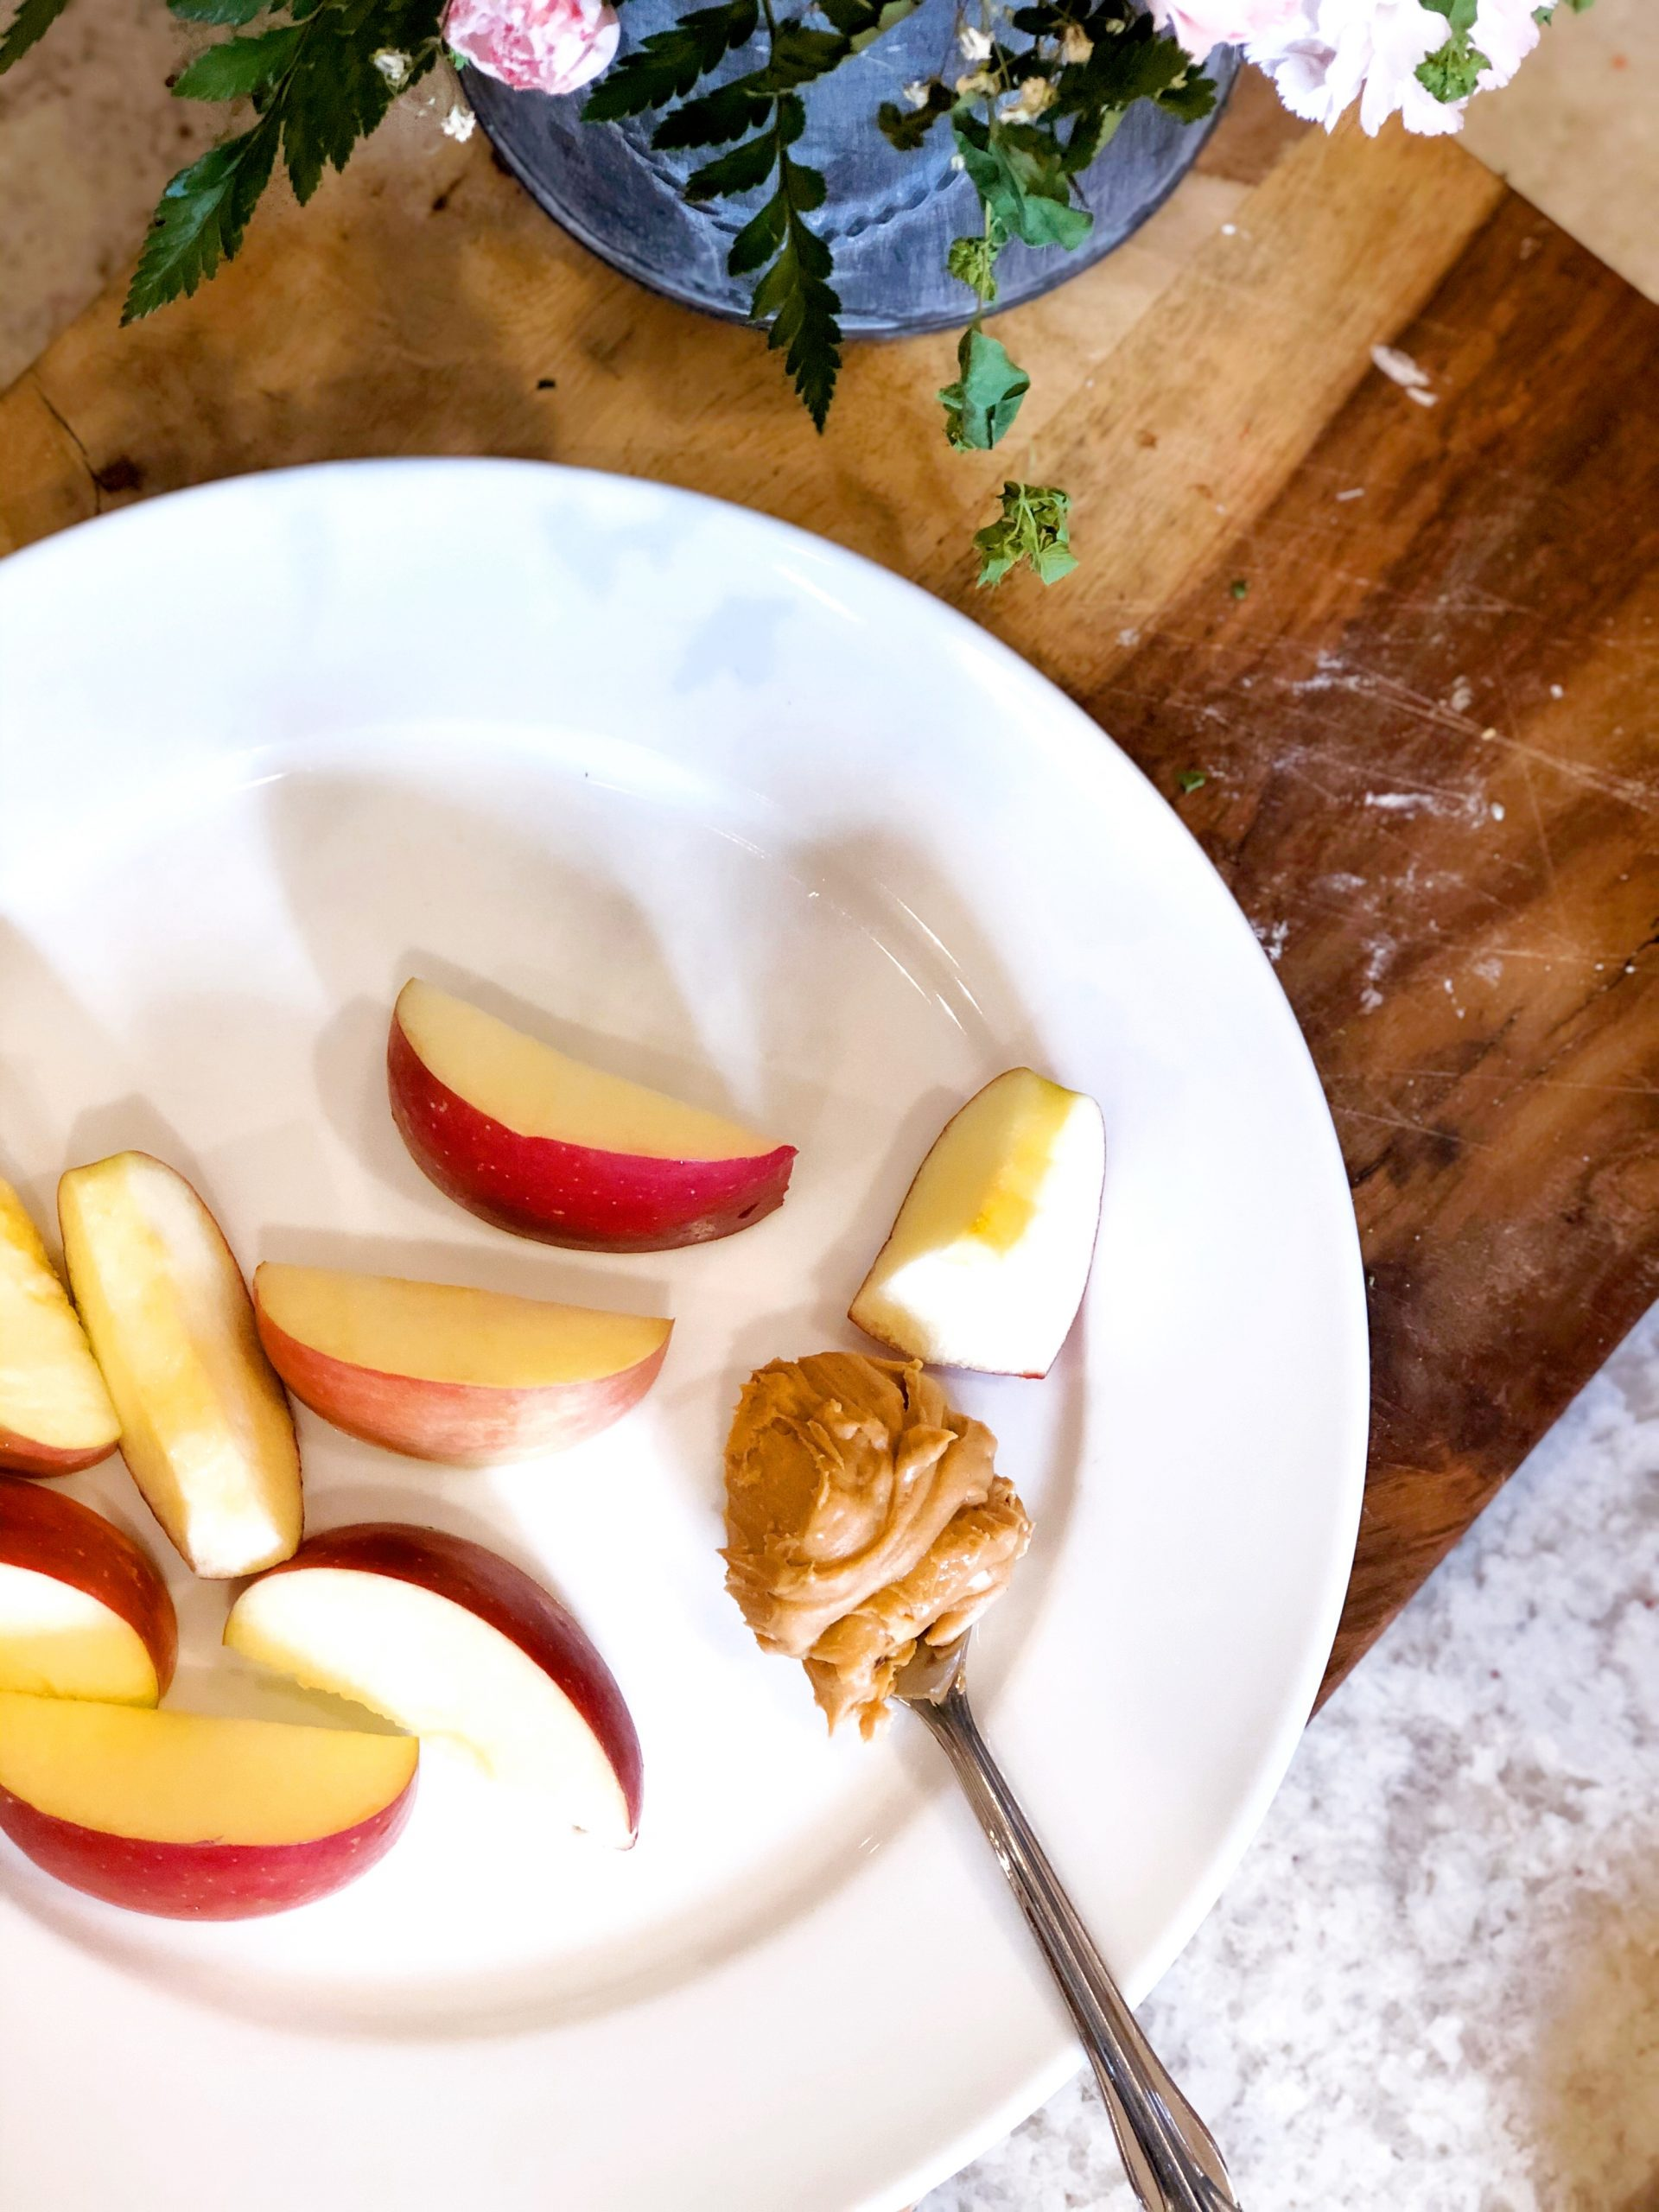 birds eye view of a chopped apple on a white plate with a spoonful of peanut butter